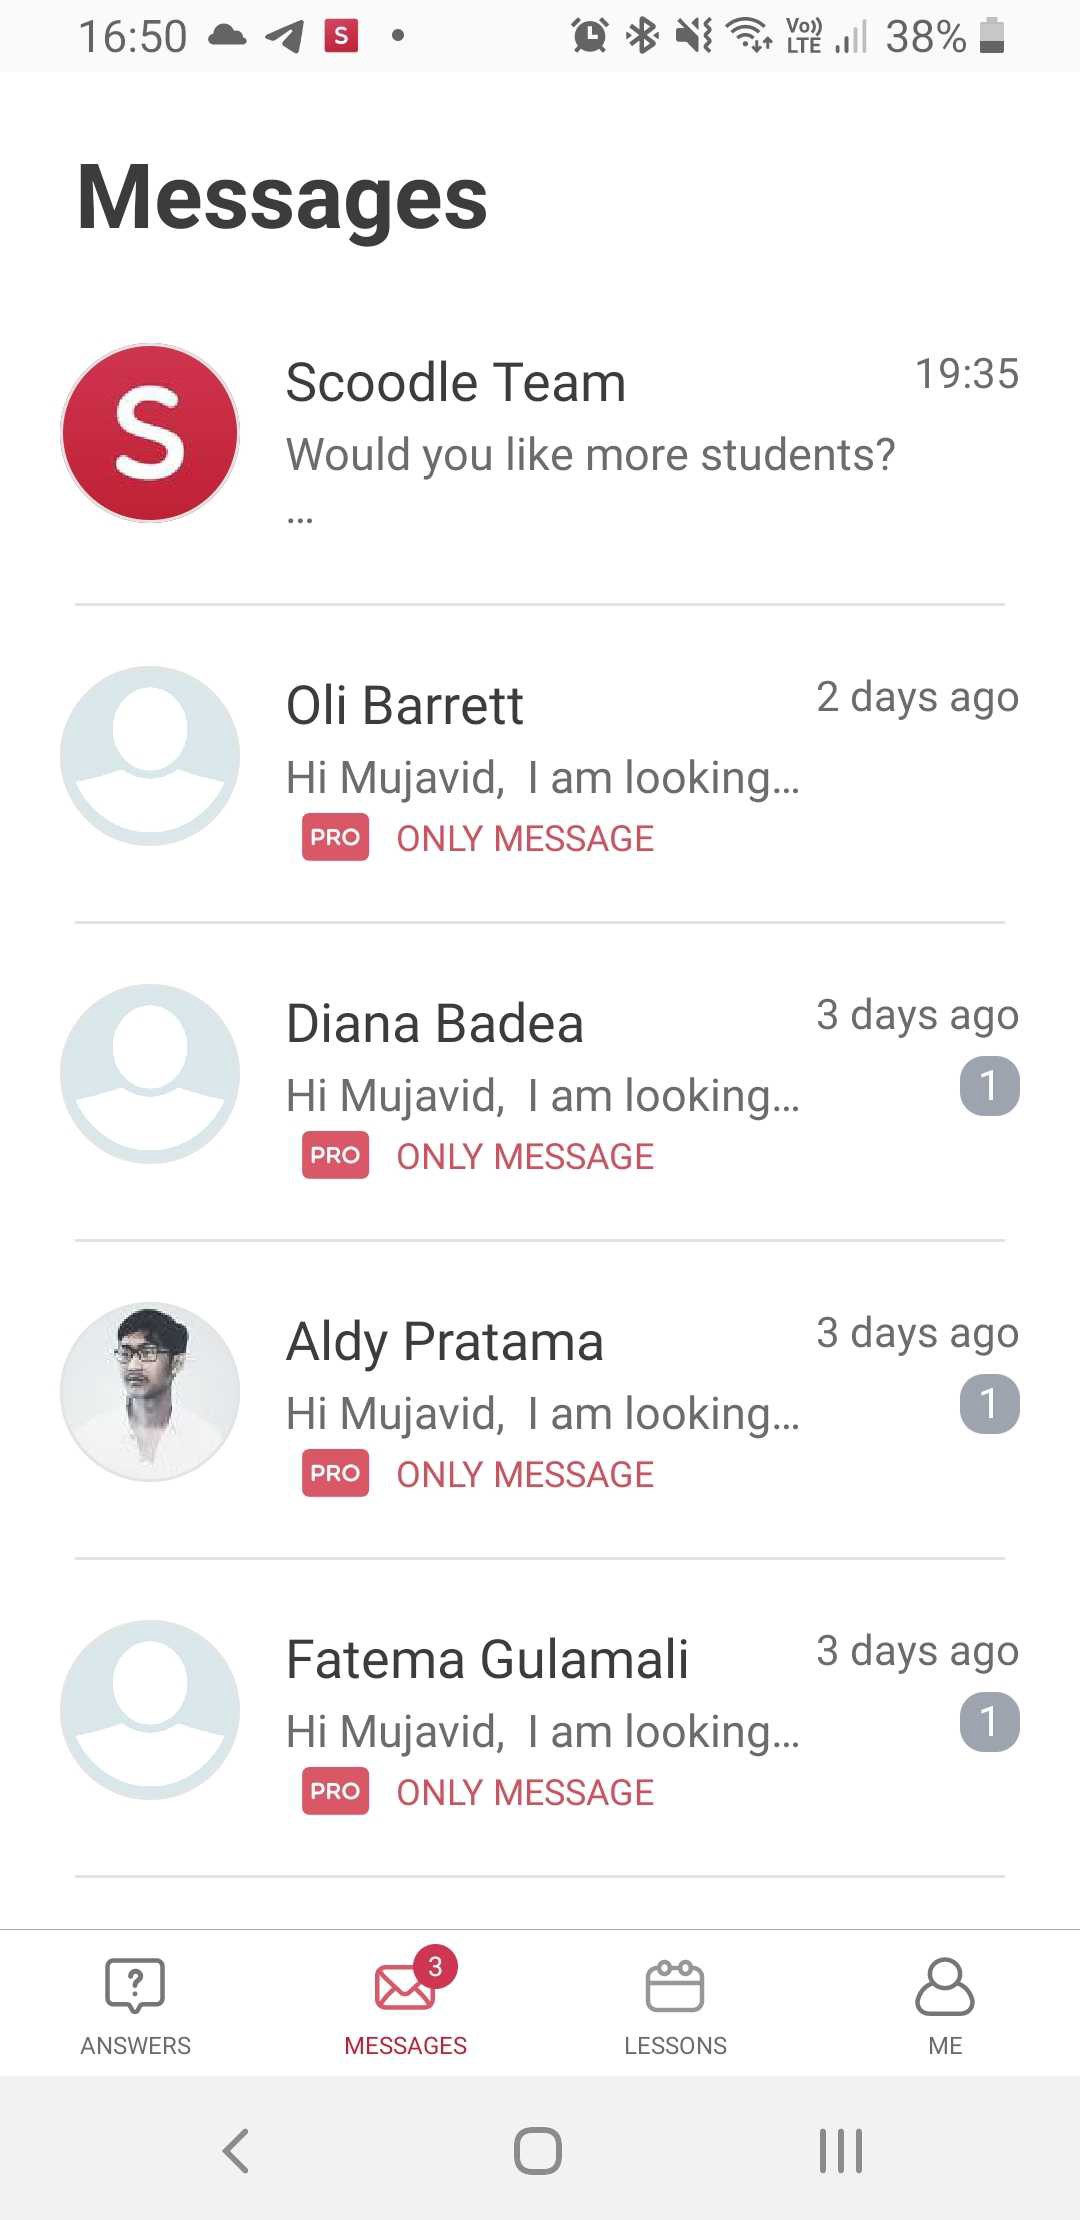 Messages UI overview